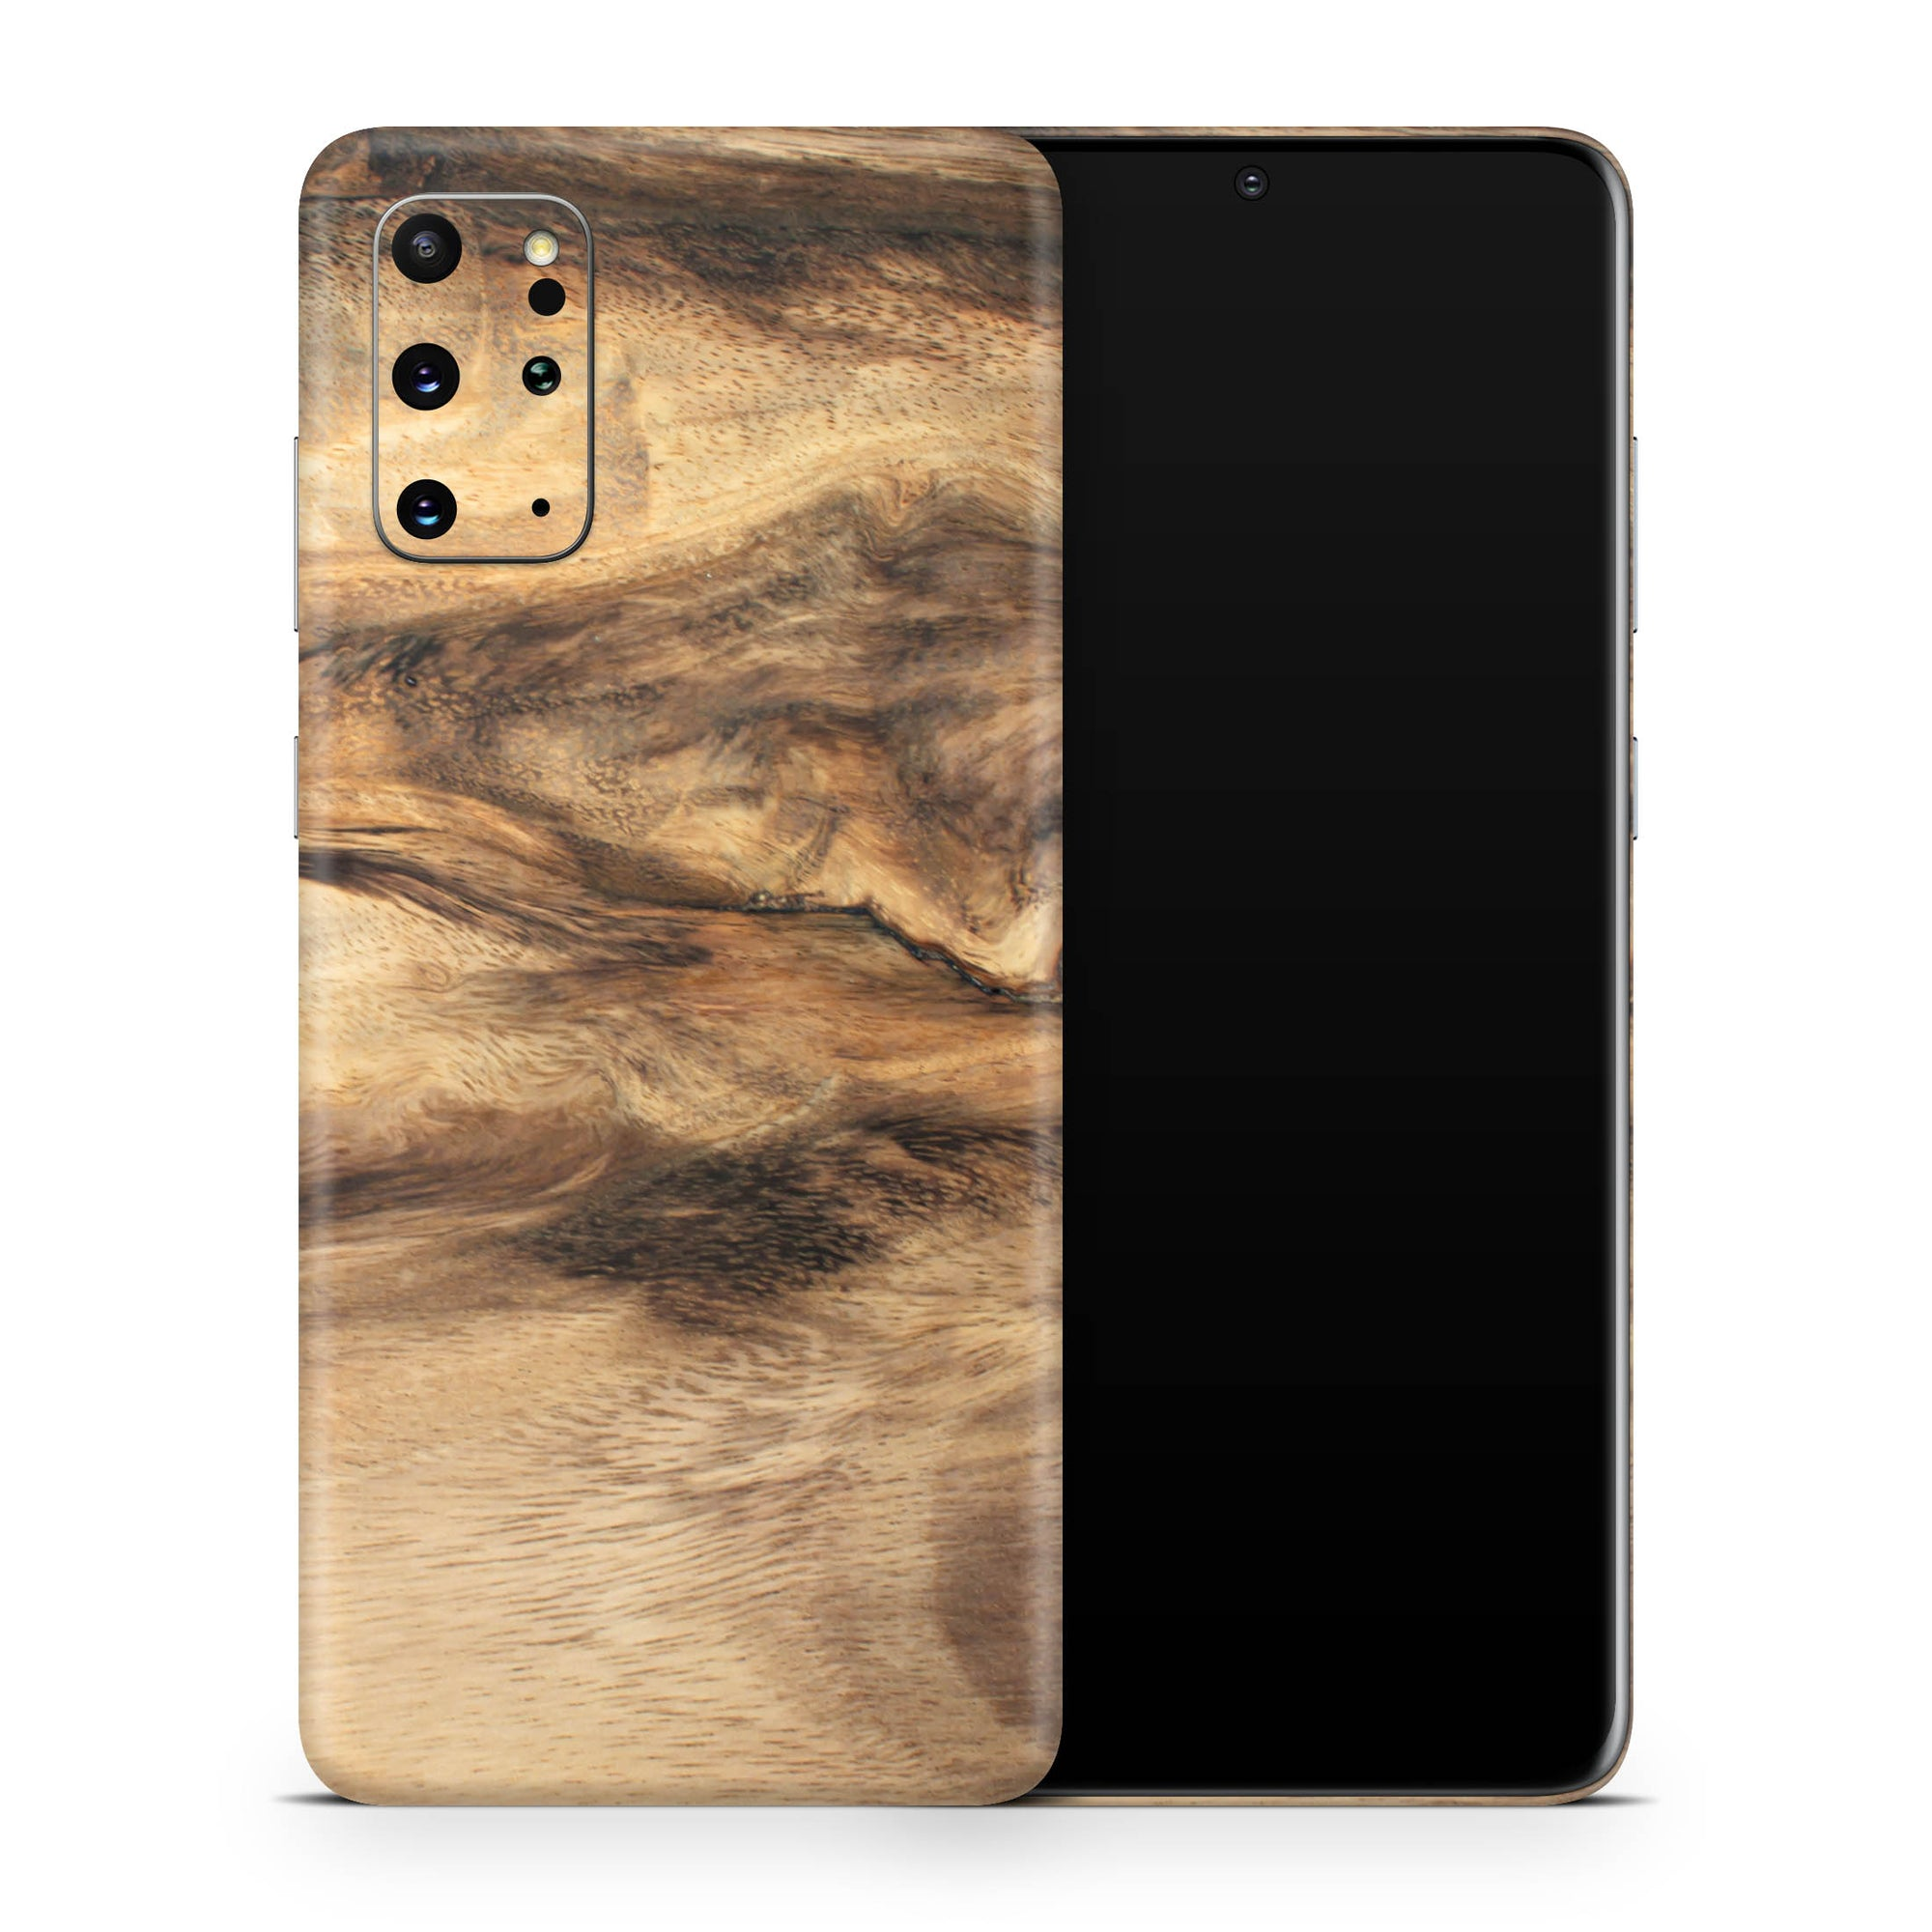 Wood Galaxy S20 Ultra Skin + Case-Uniqfind